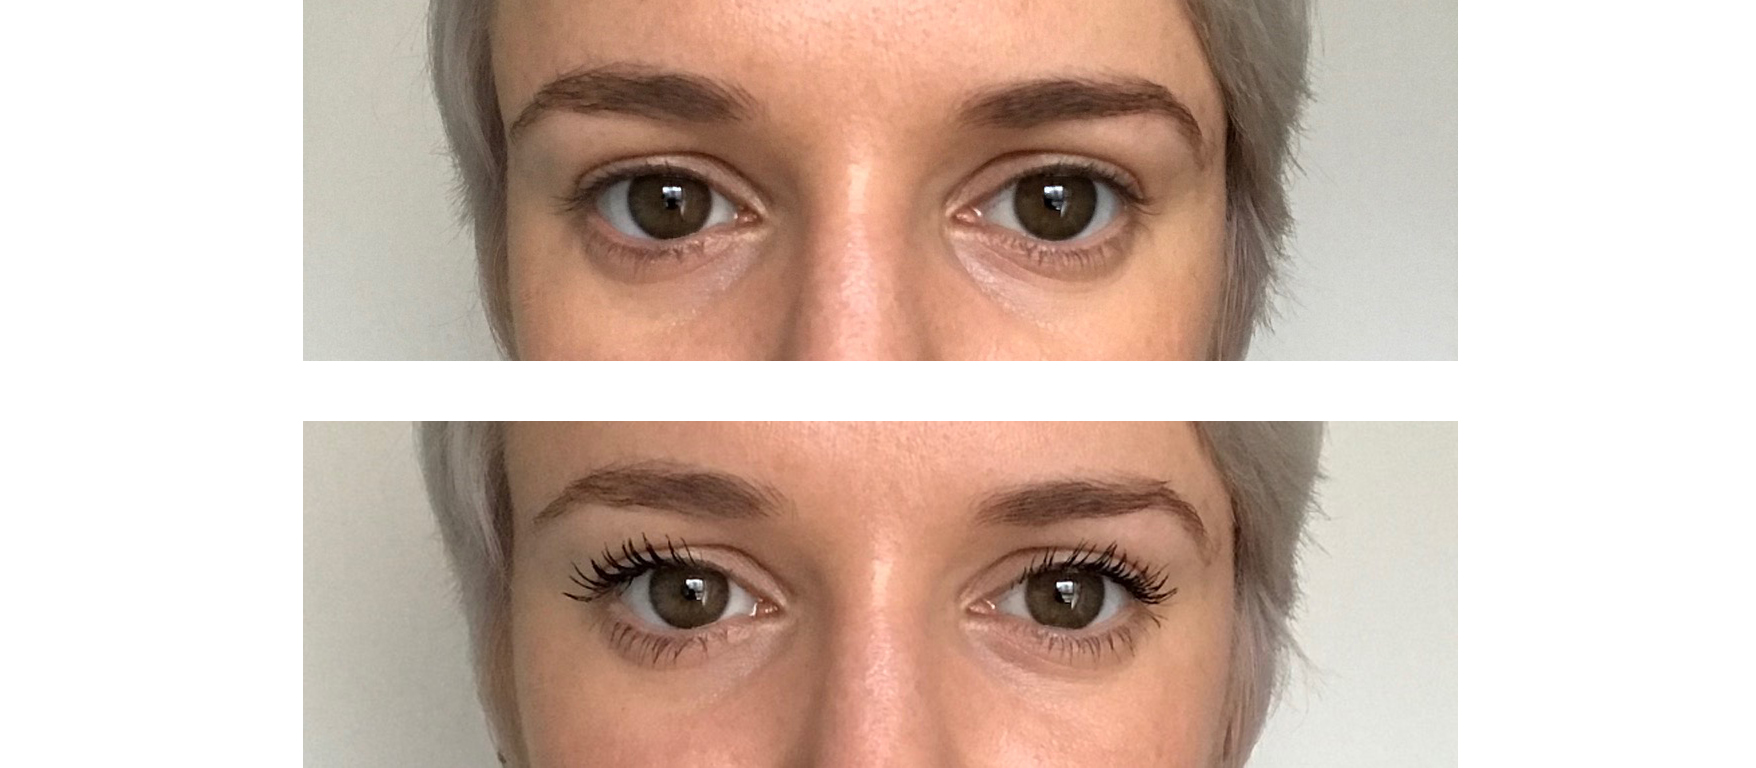 157fcc32aa1 before and after shots of eyes with Benefit Badgal Bang! mascara